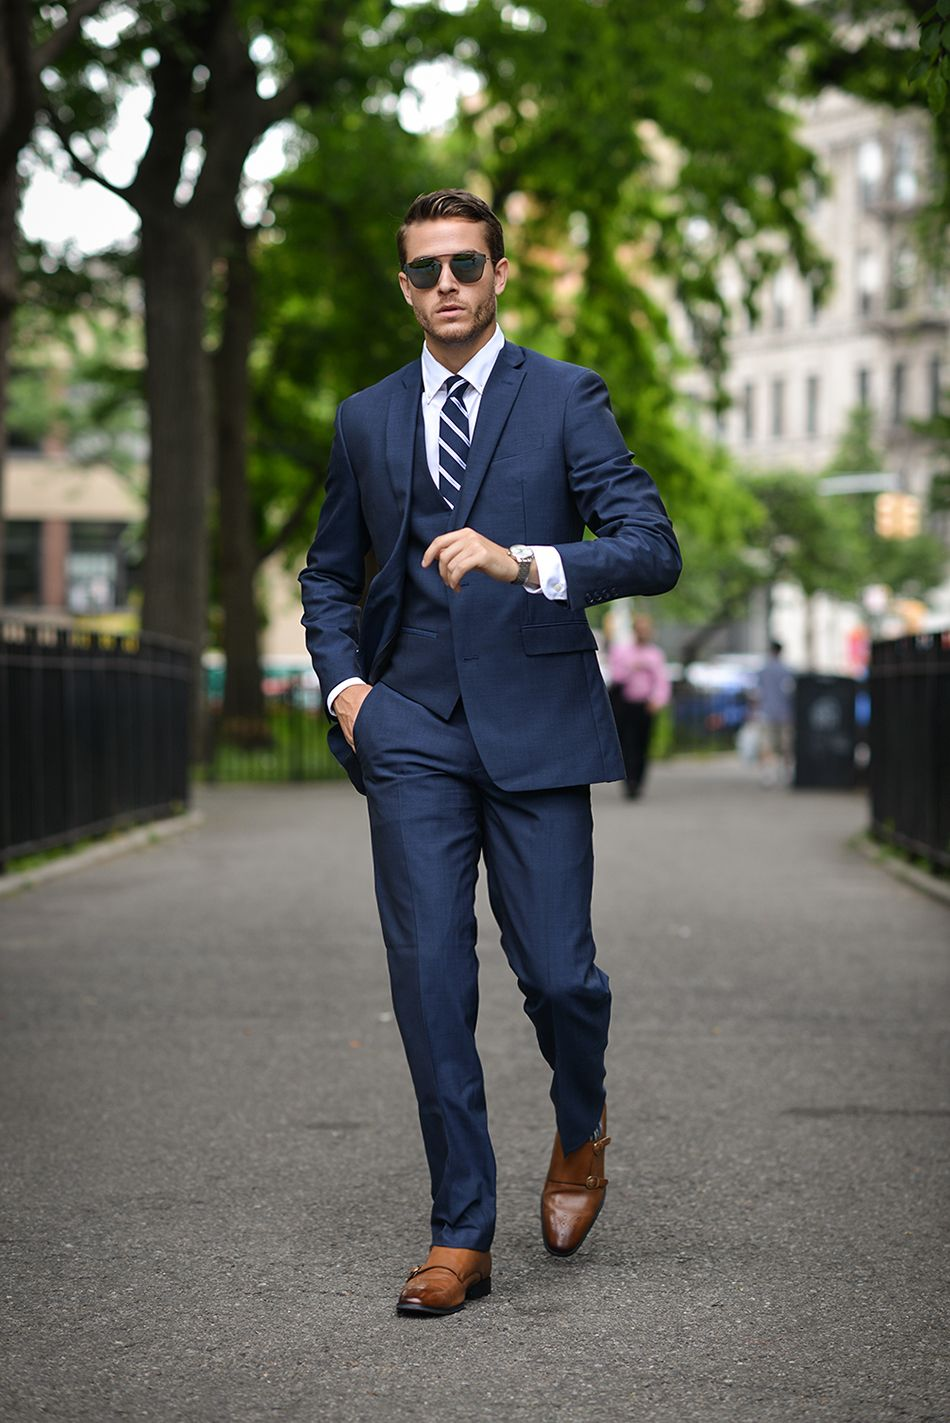 Combinando Trajes Chino Casanova Pin In 2019 Suit Fashion Suits